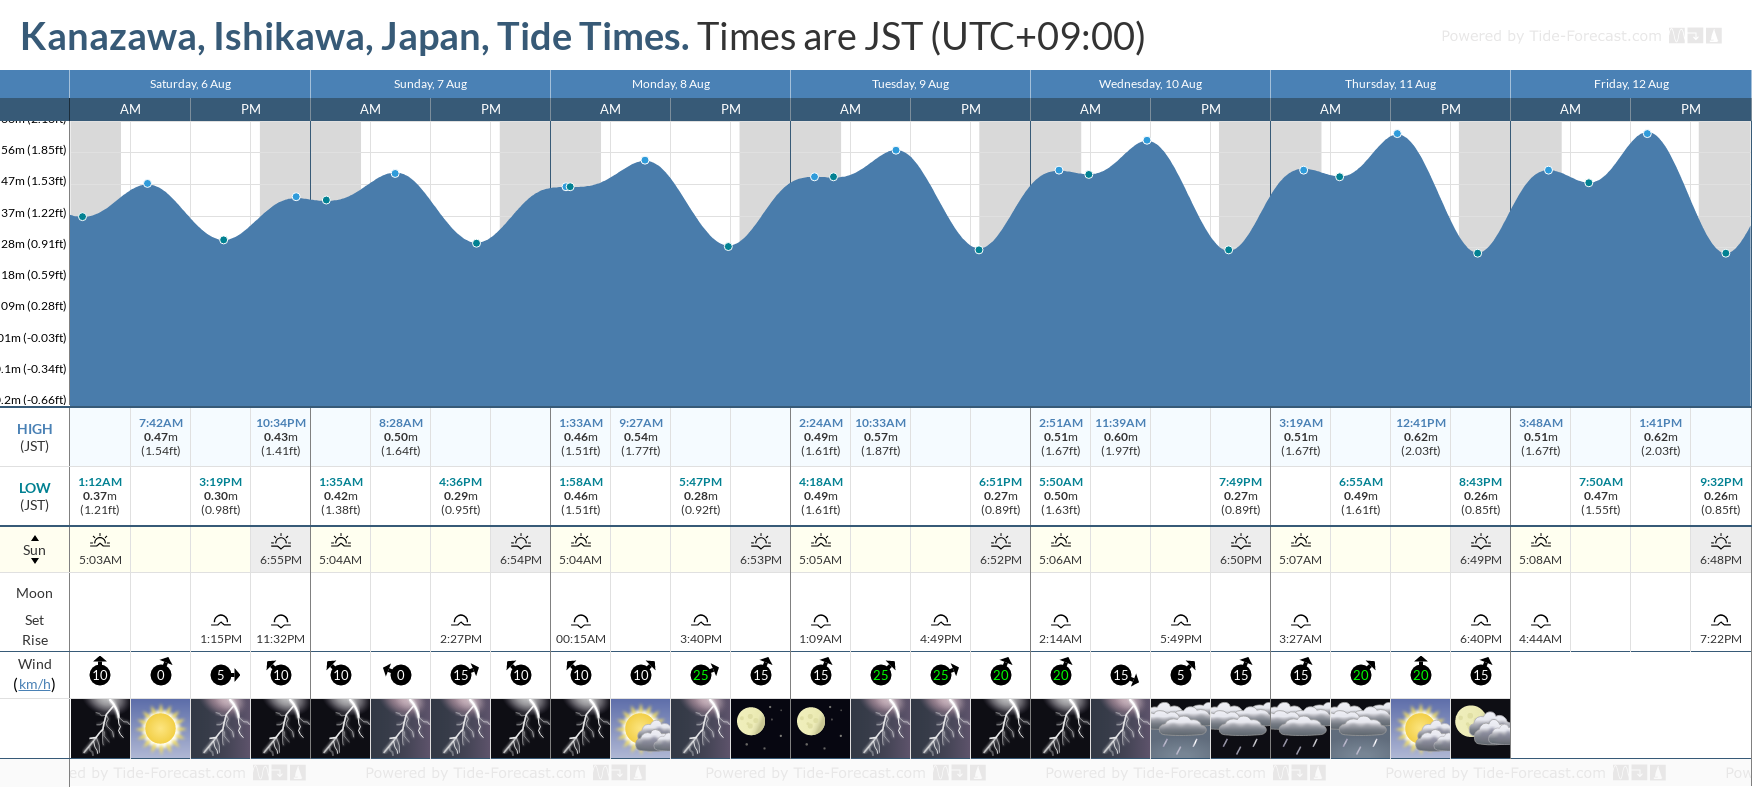 Kanazawa, Ishikawa, Japan Tide Chart including high and low tide tide times for the next 7 days